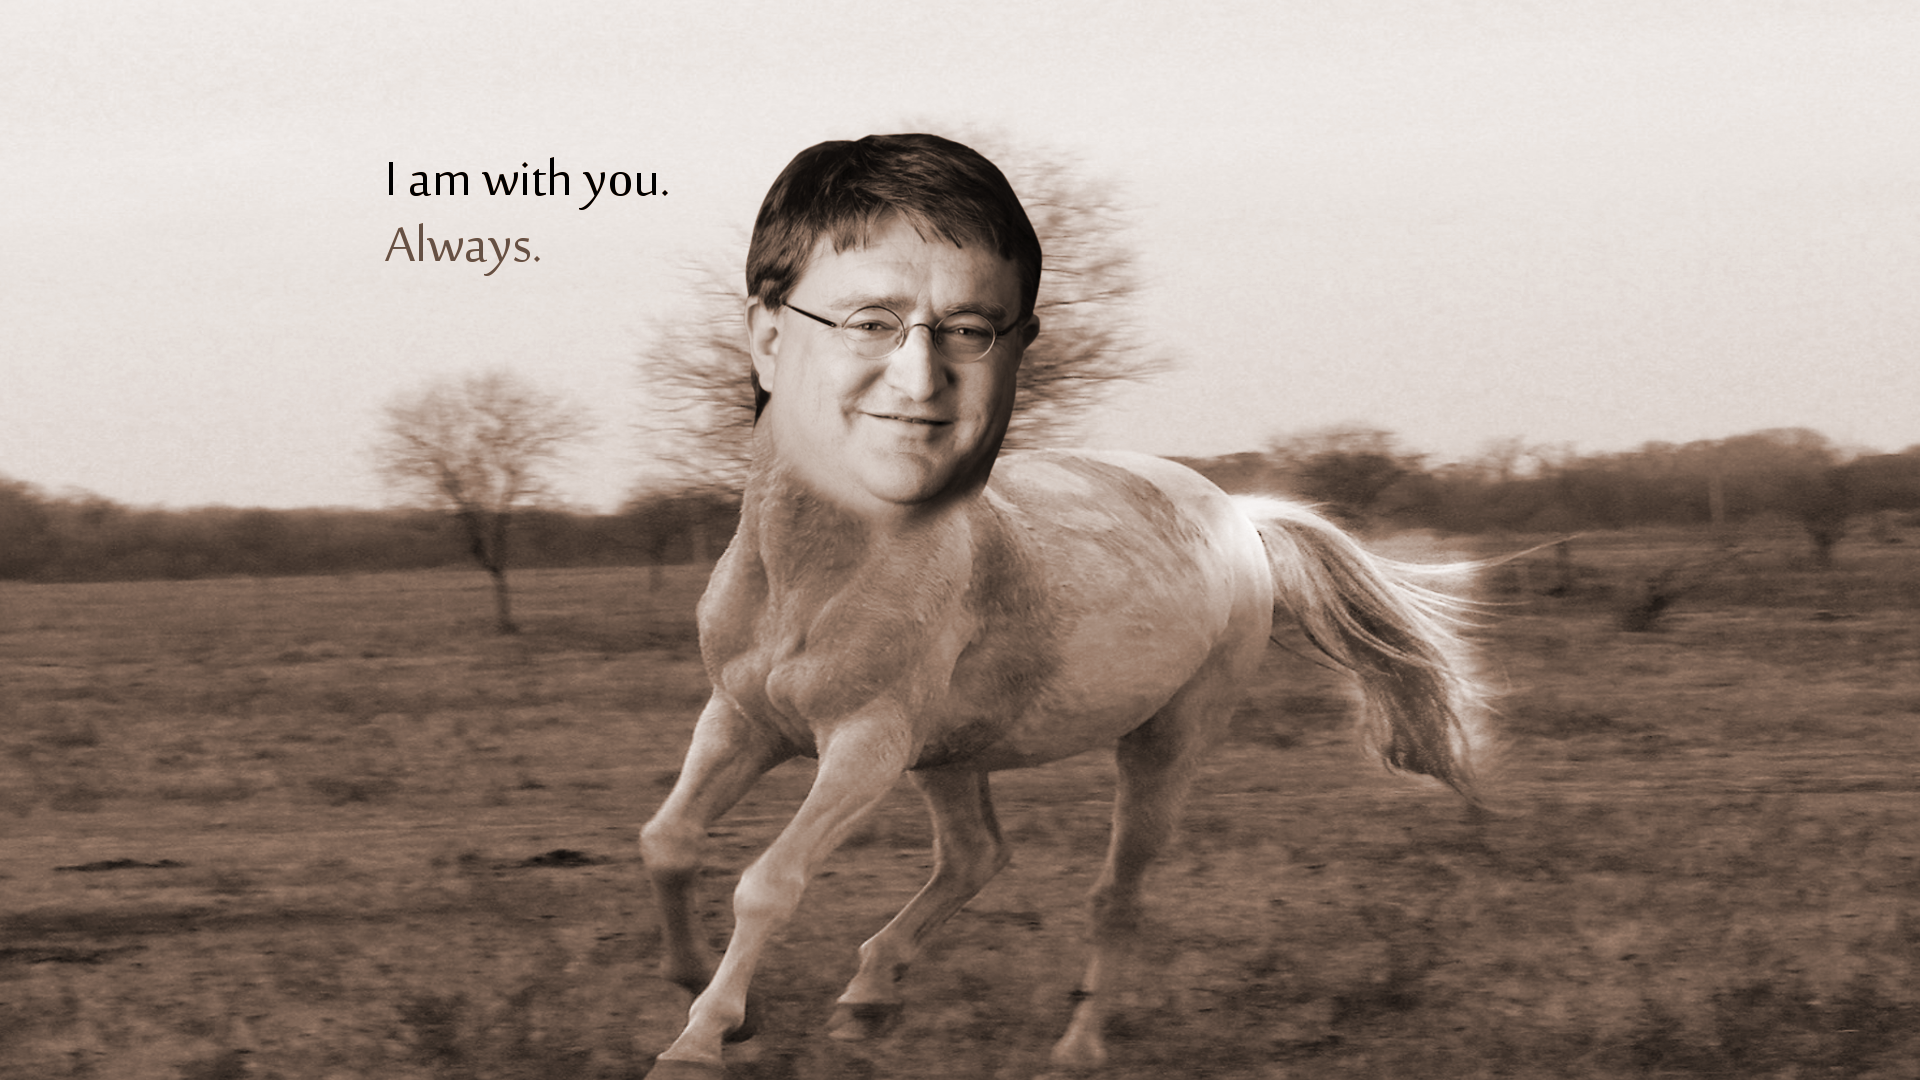 gabe newell wallpaper - photo #19